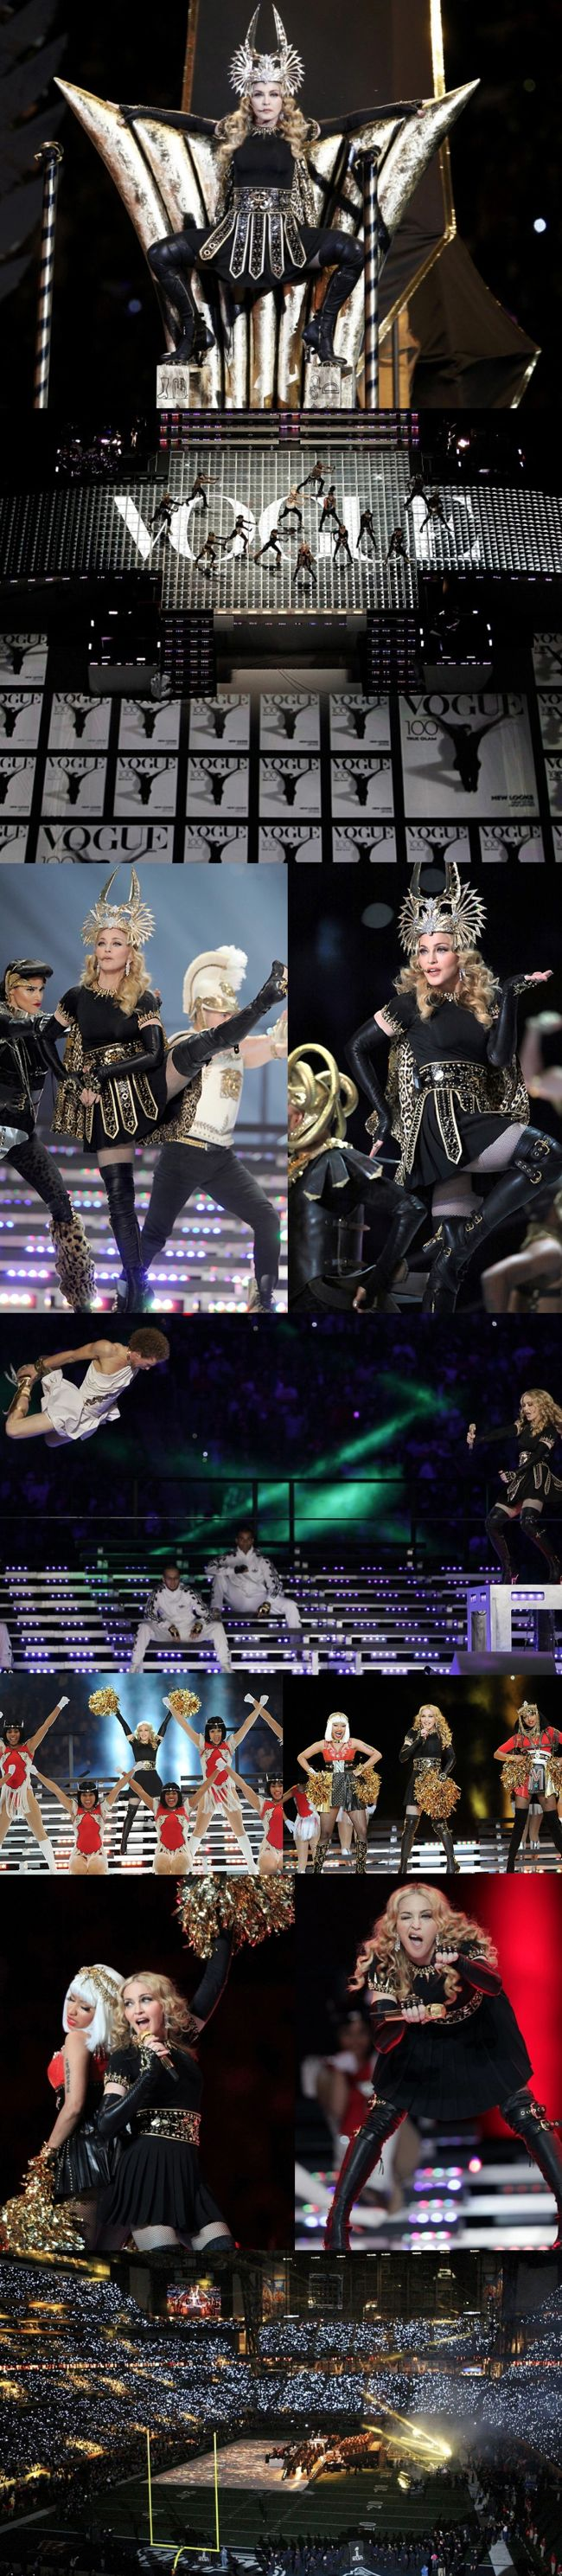 MADONNA'S SUPER BOWL PERFORMANCE